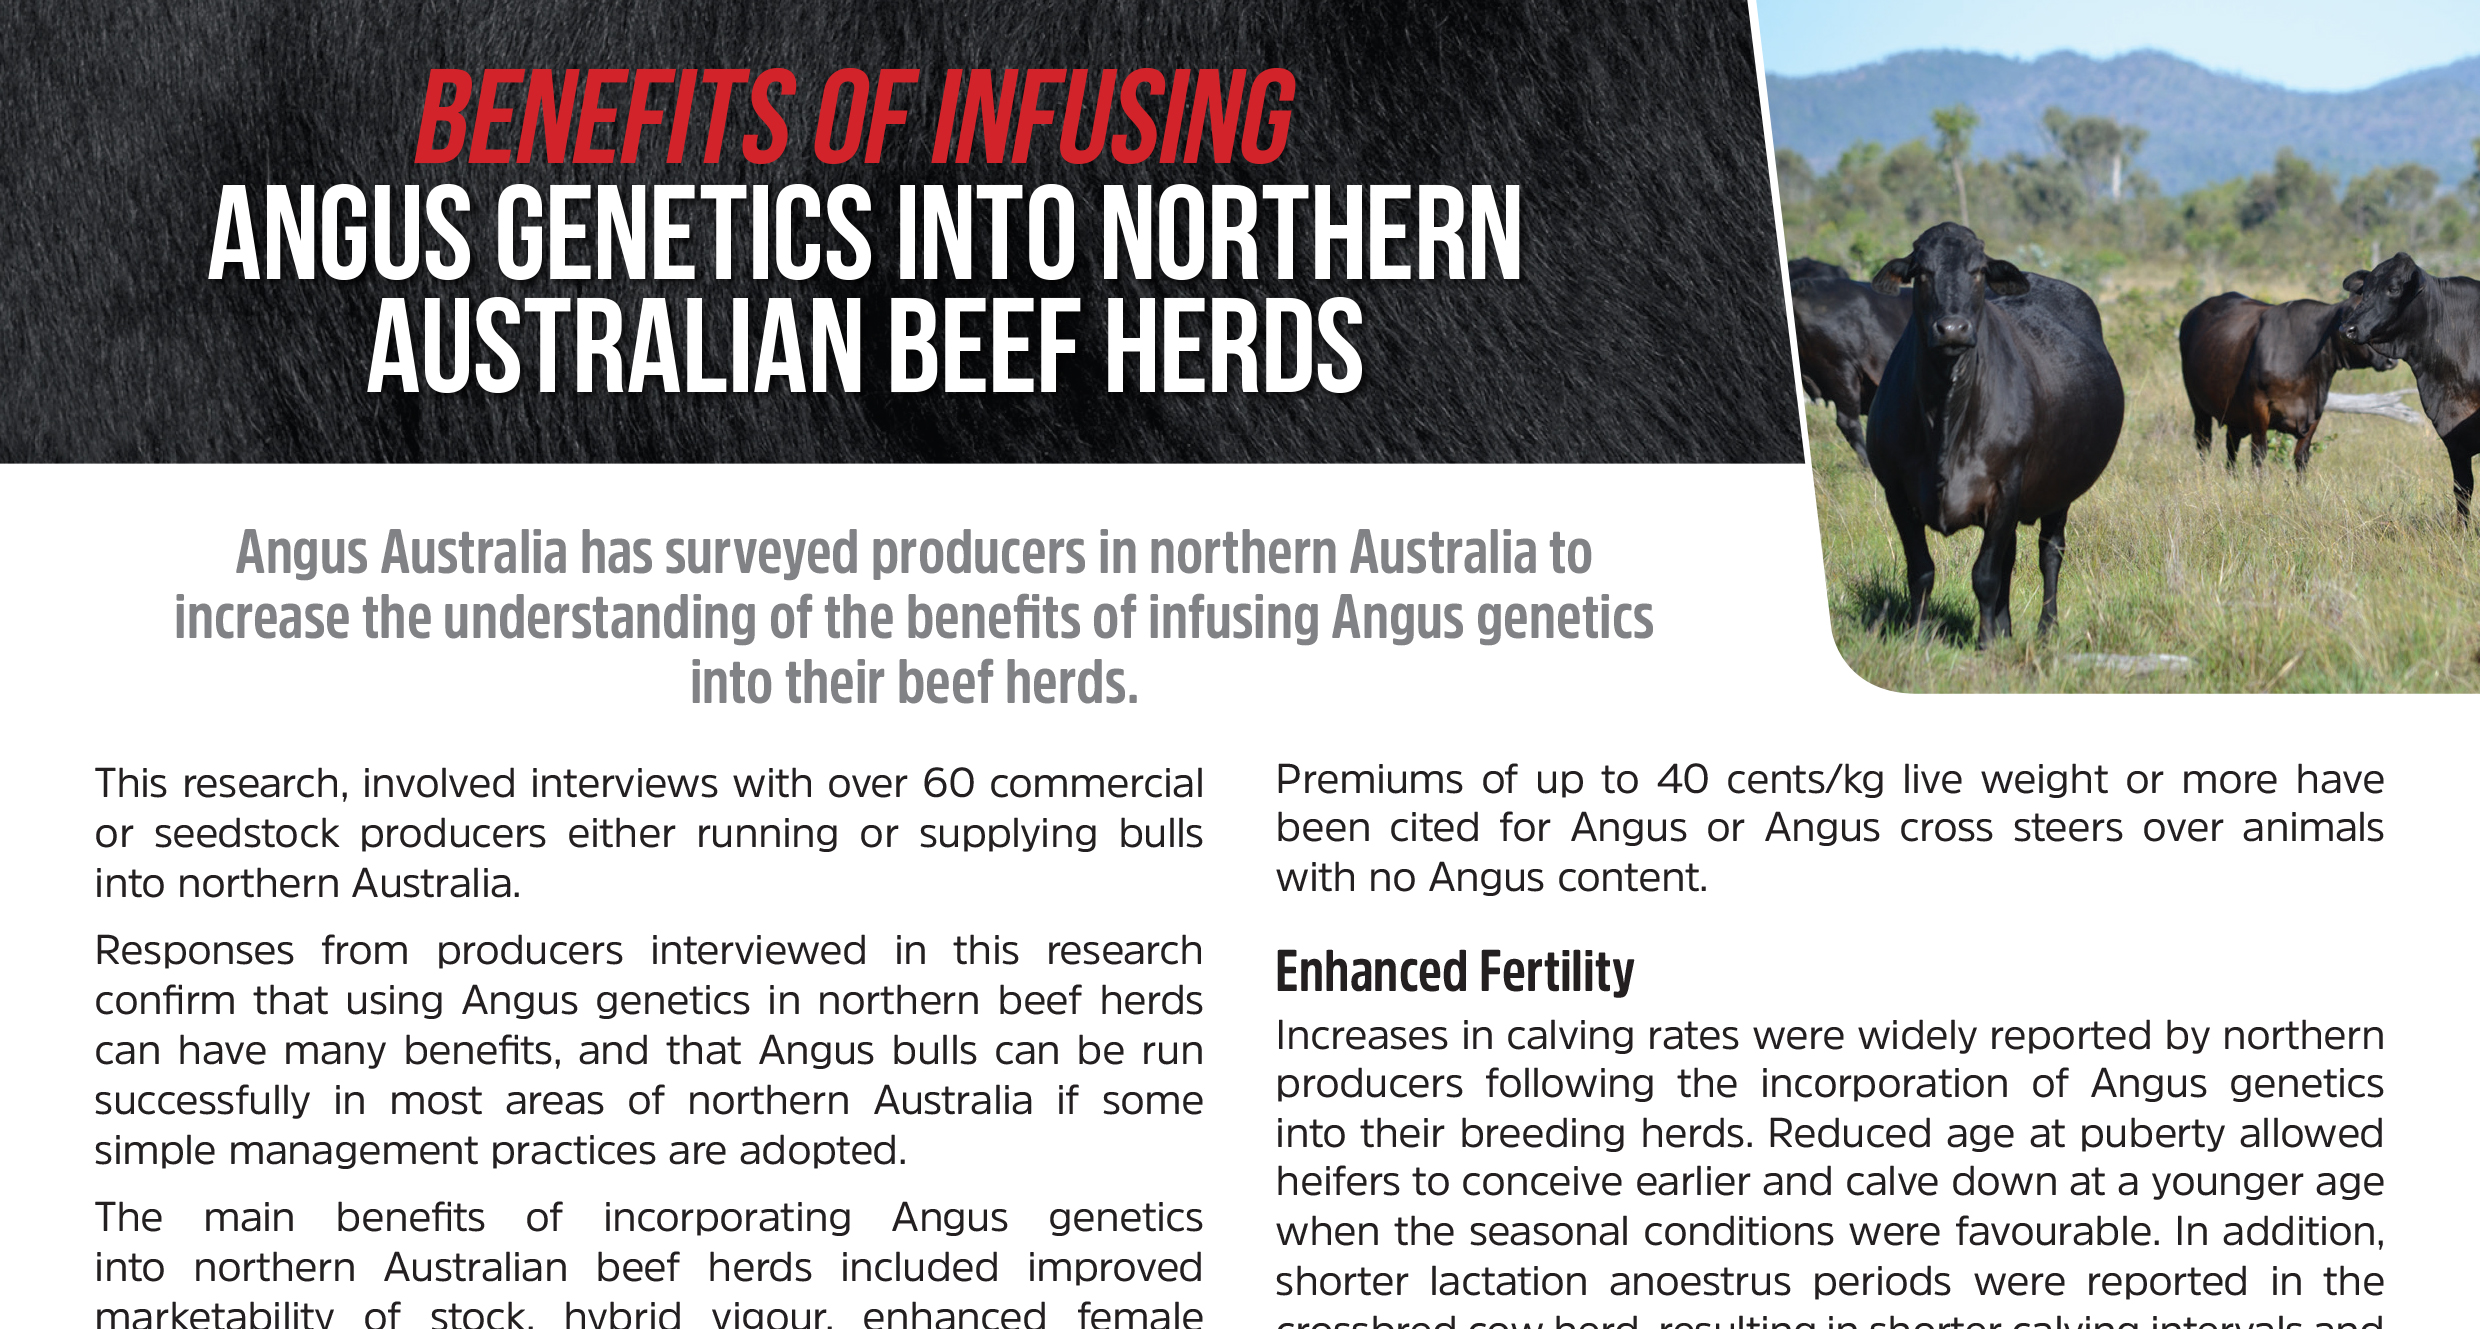 Benefits of Infusing Angus Genetics into Northern Australian Beef Herds